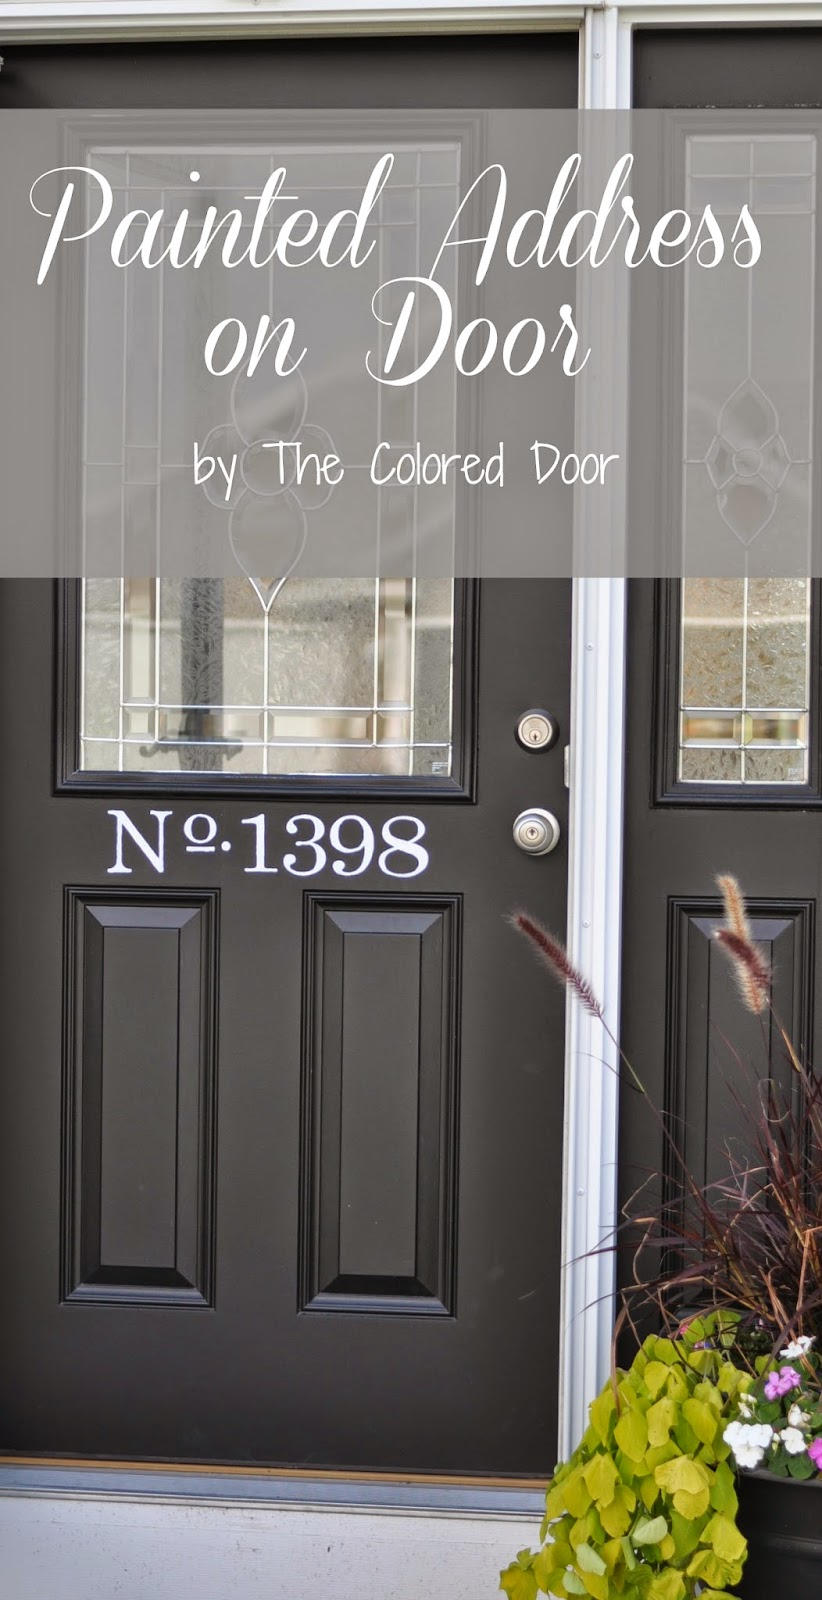 Painted Address \ The Colored Door